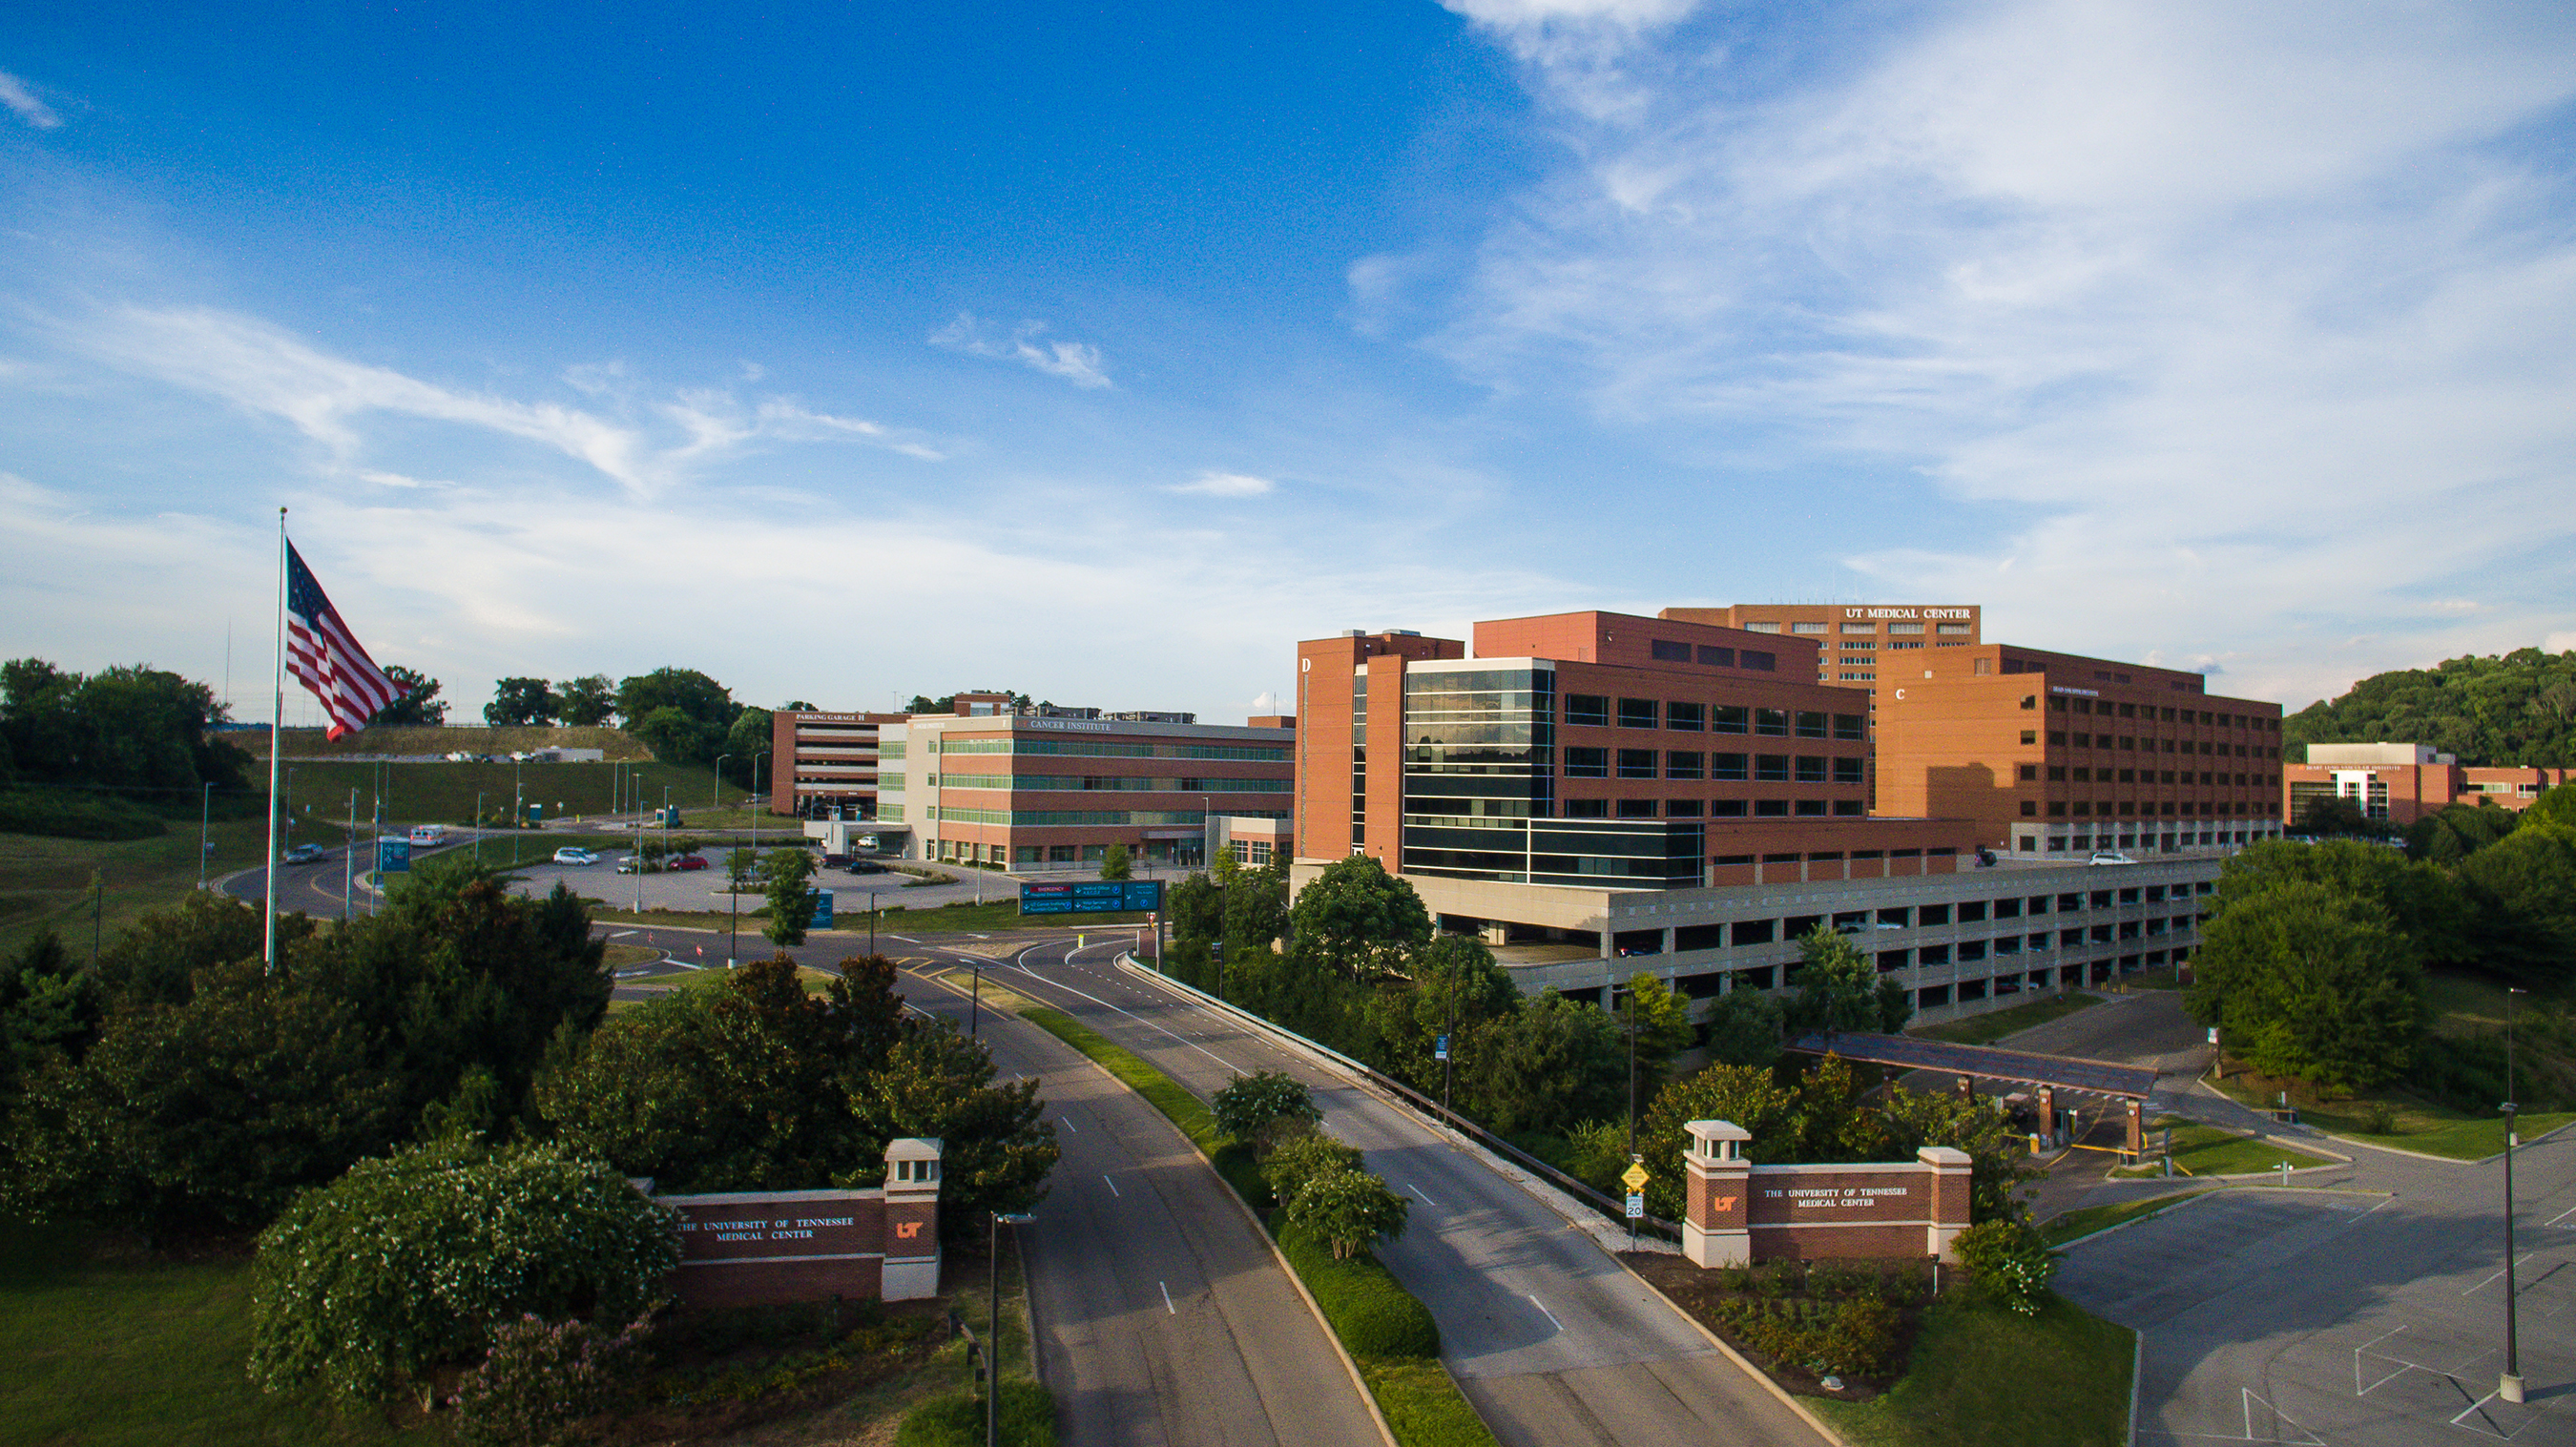 The University of Tennessee Medical Center